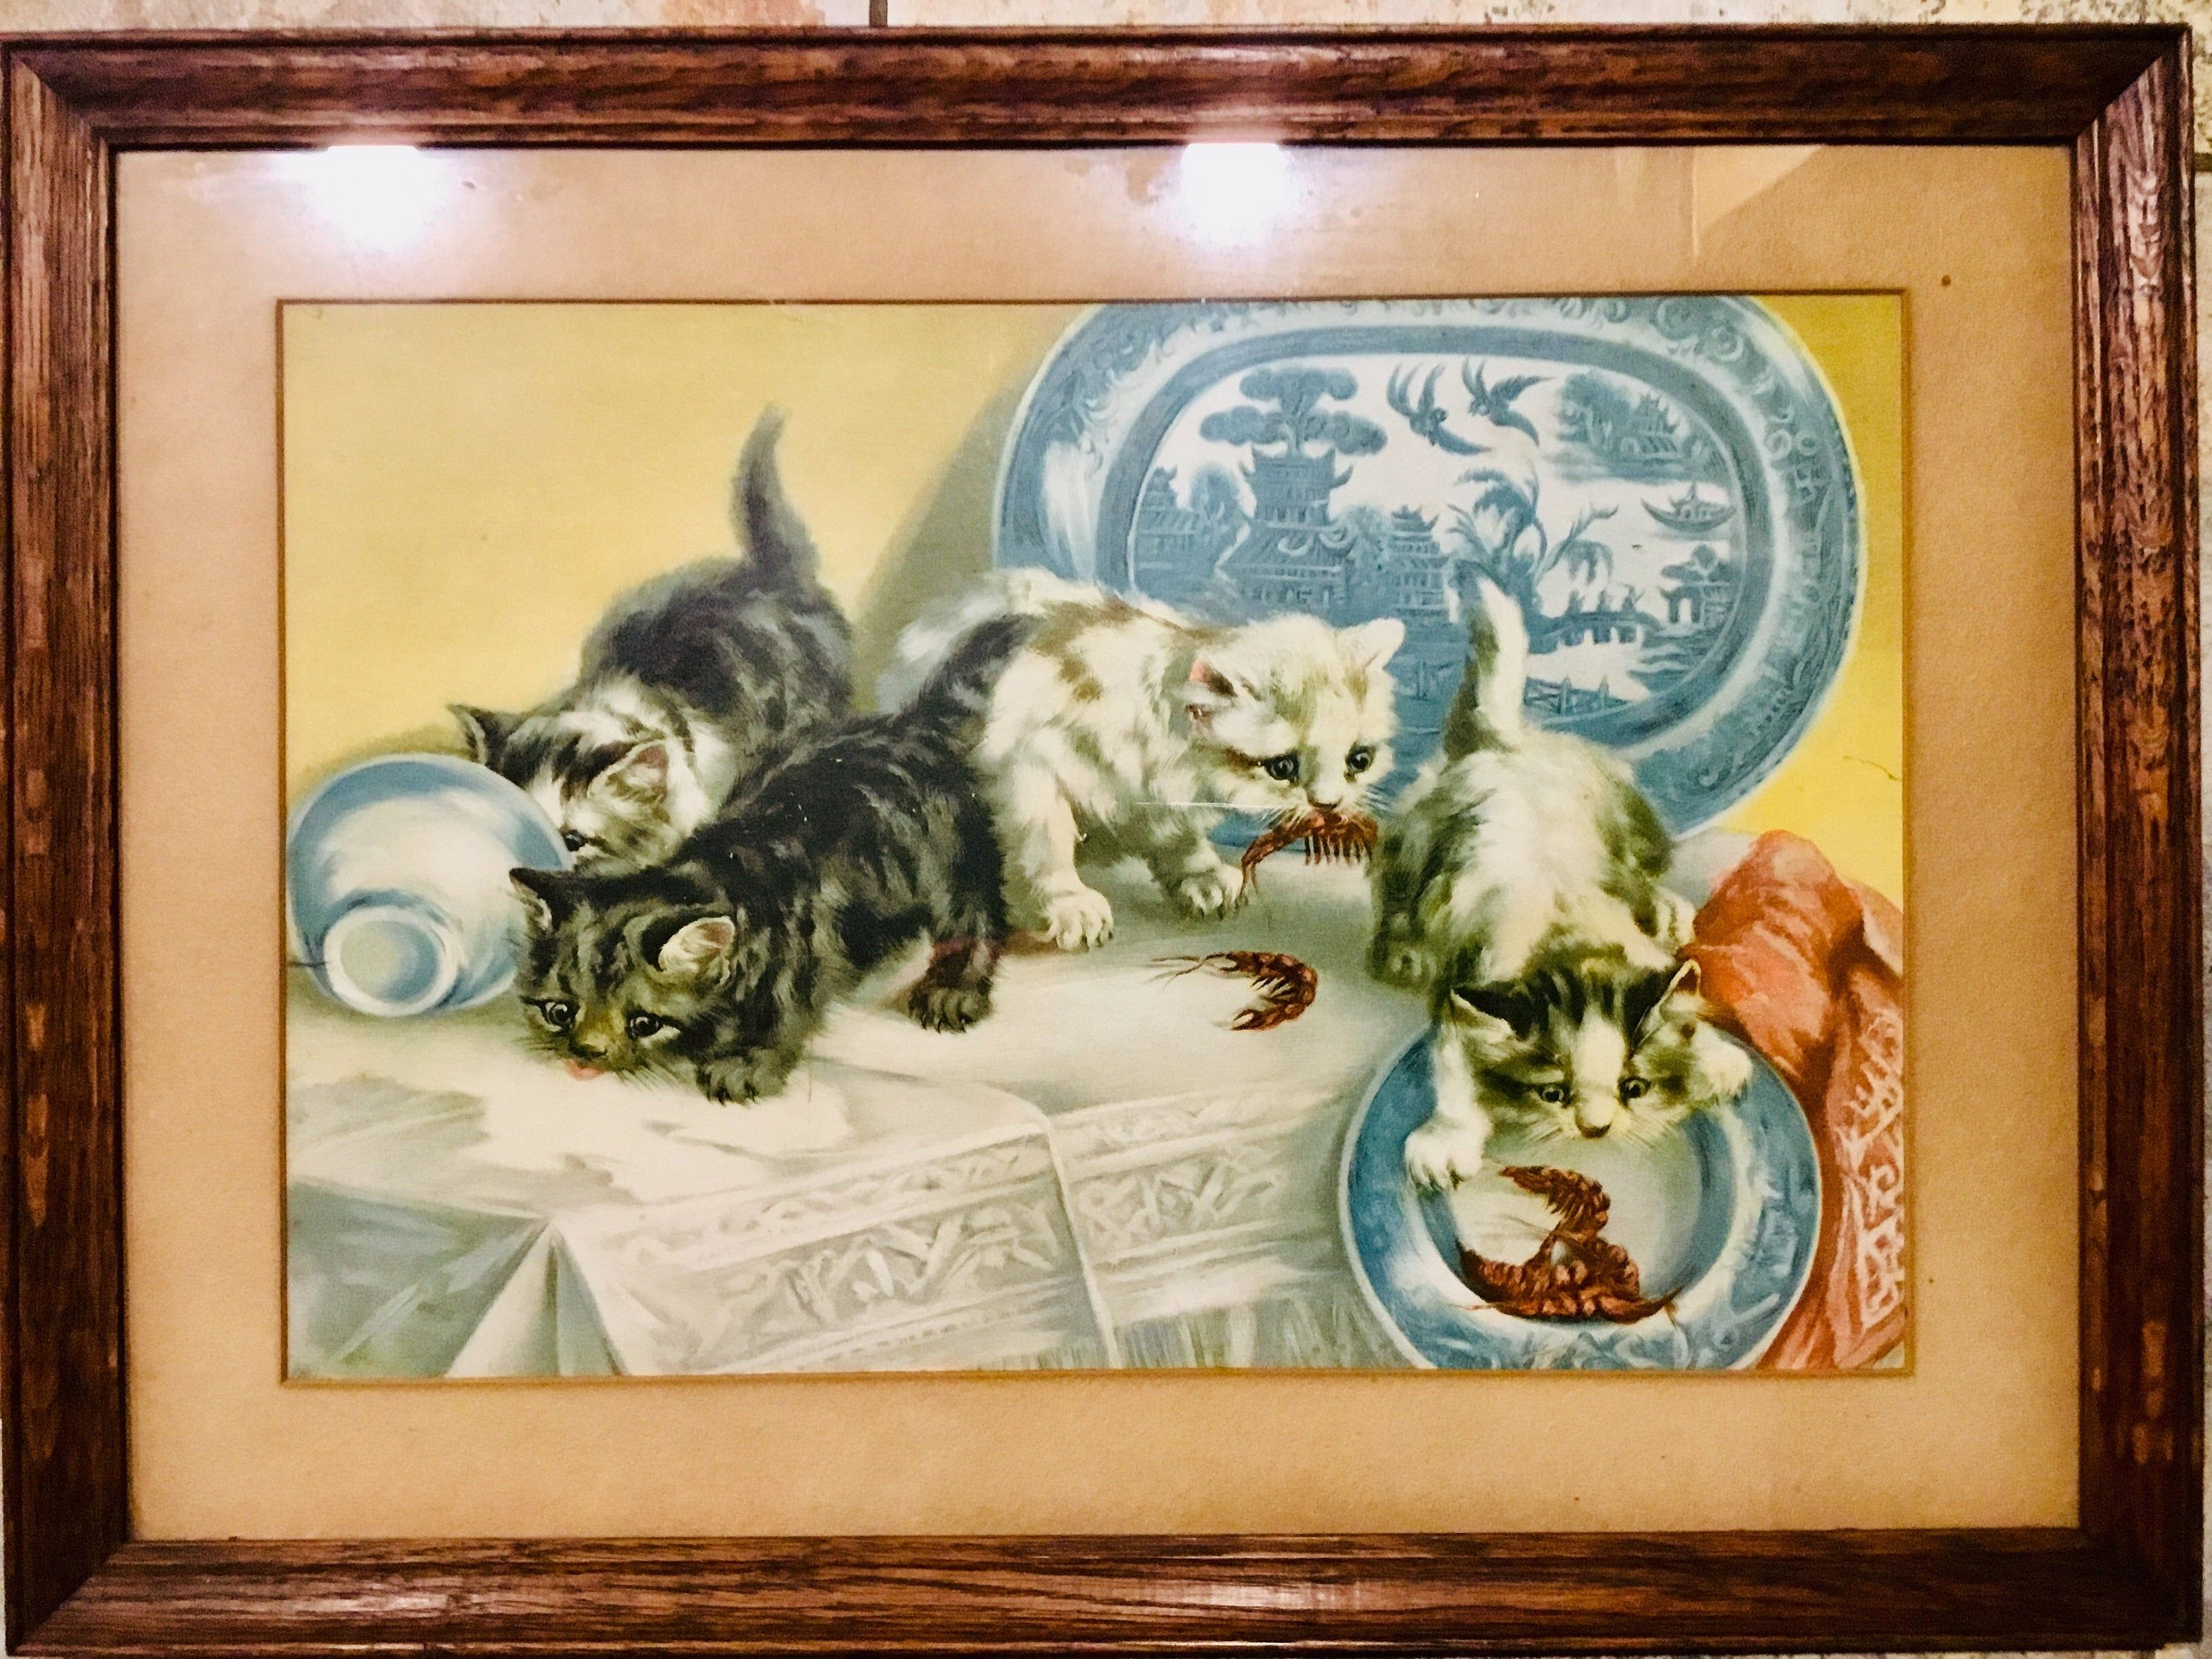 Kantner S Art Store Pictures And Frames 103 S 6th St Reading Pa In 2020 Art Art Store Frame